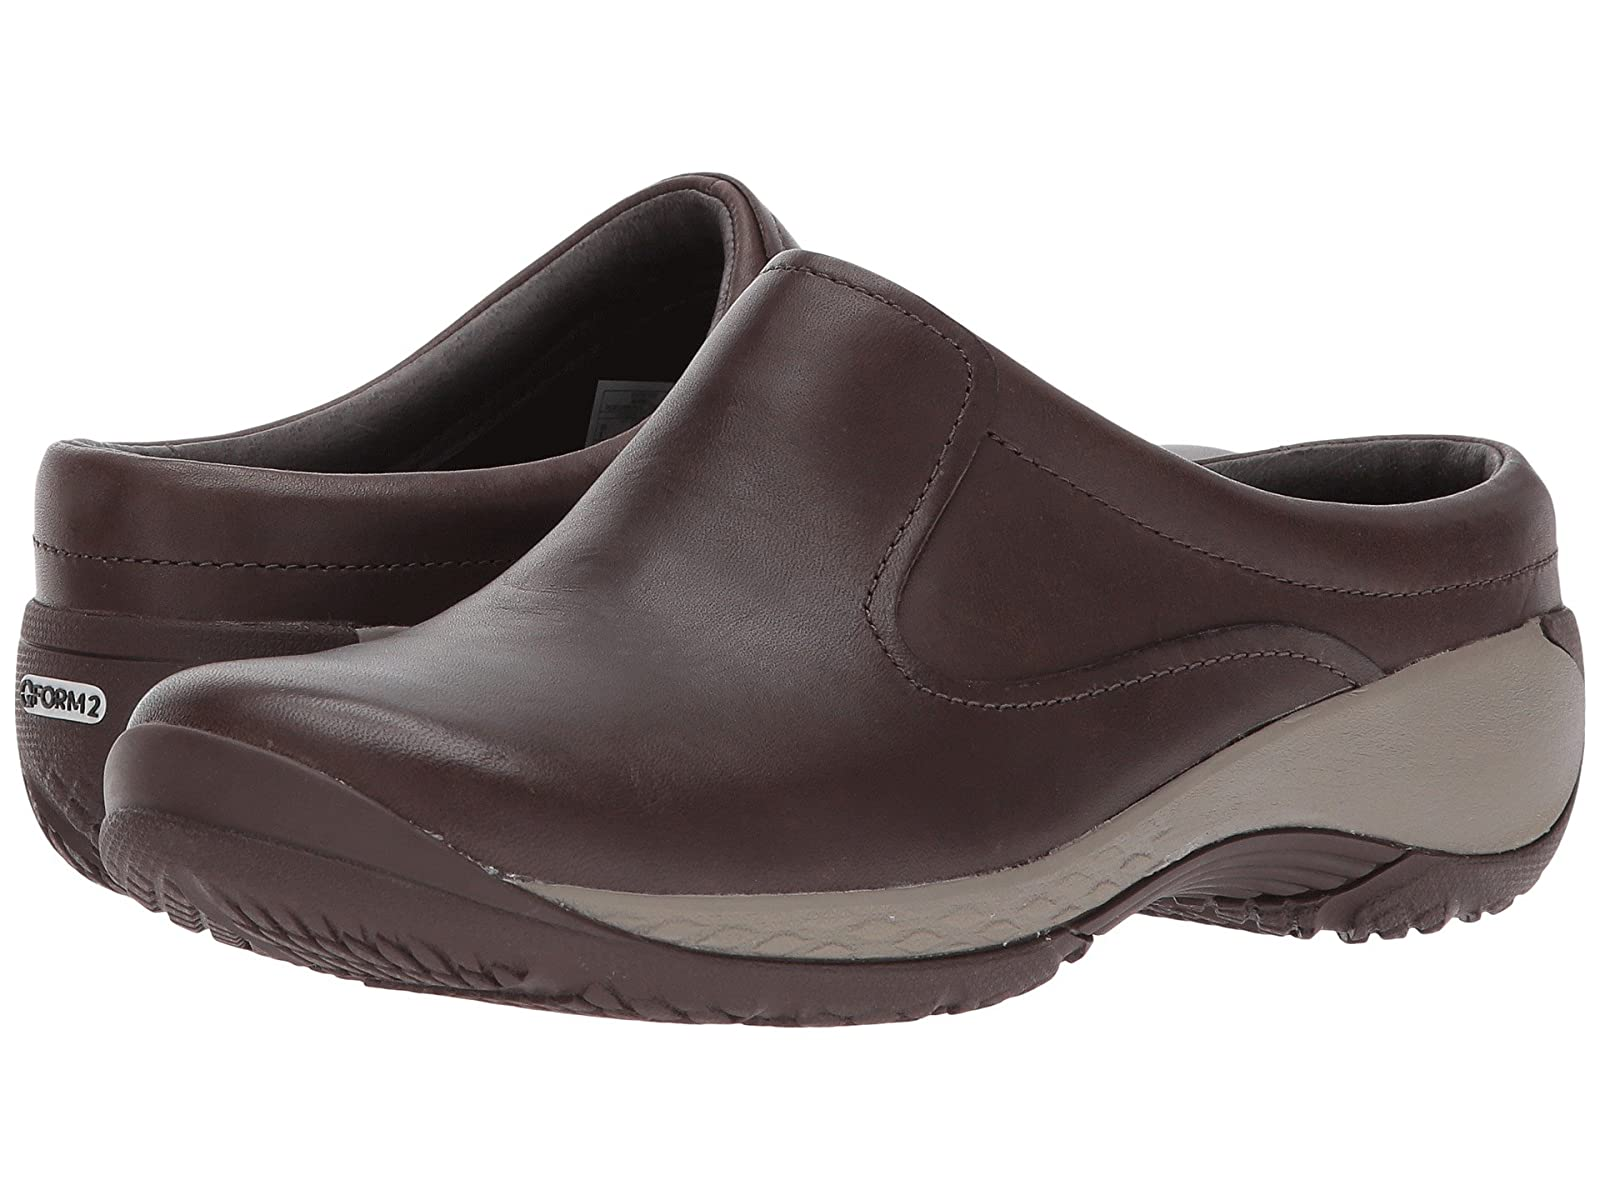 Merrell Encore Q2 Slide LeatherAtmospheric grades have affordable shoes